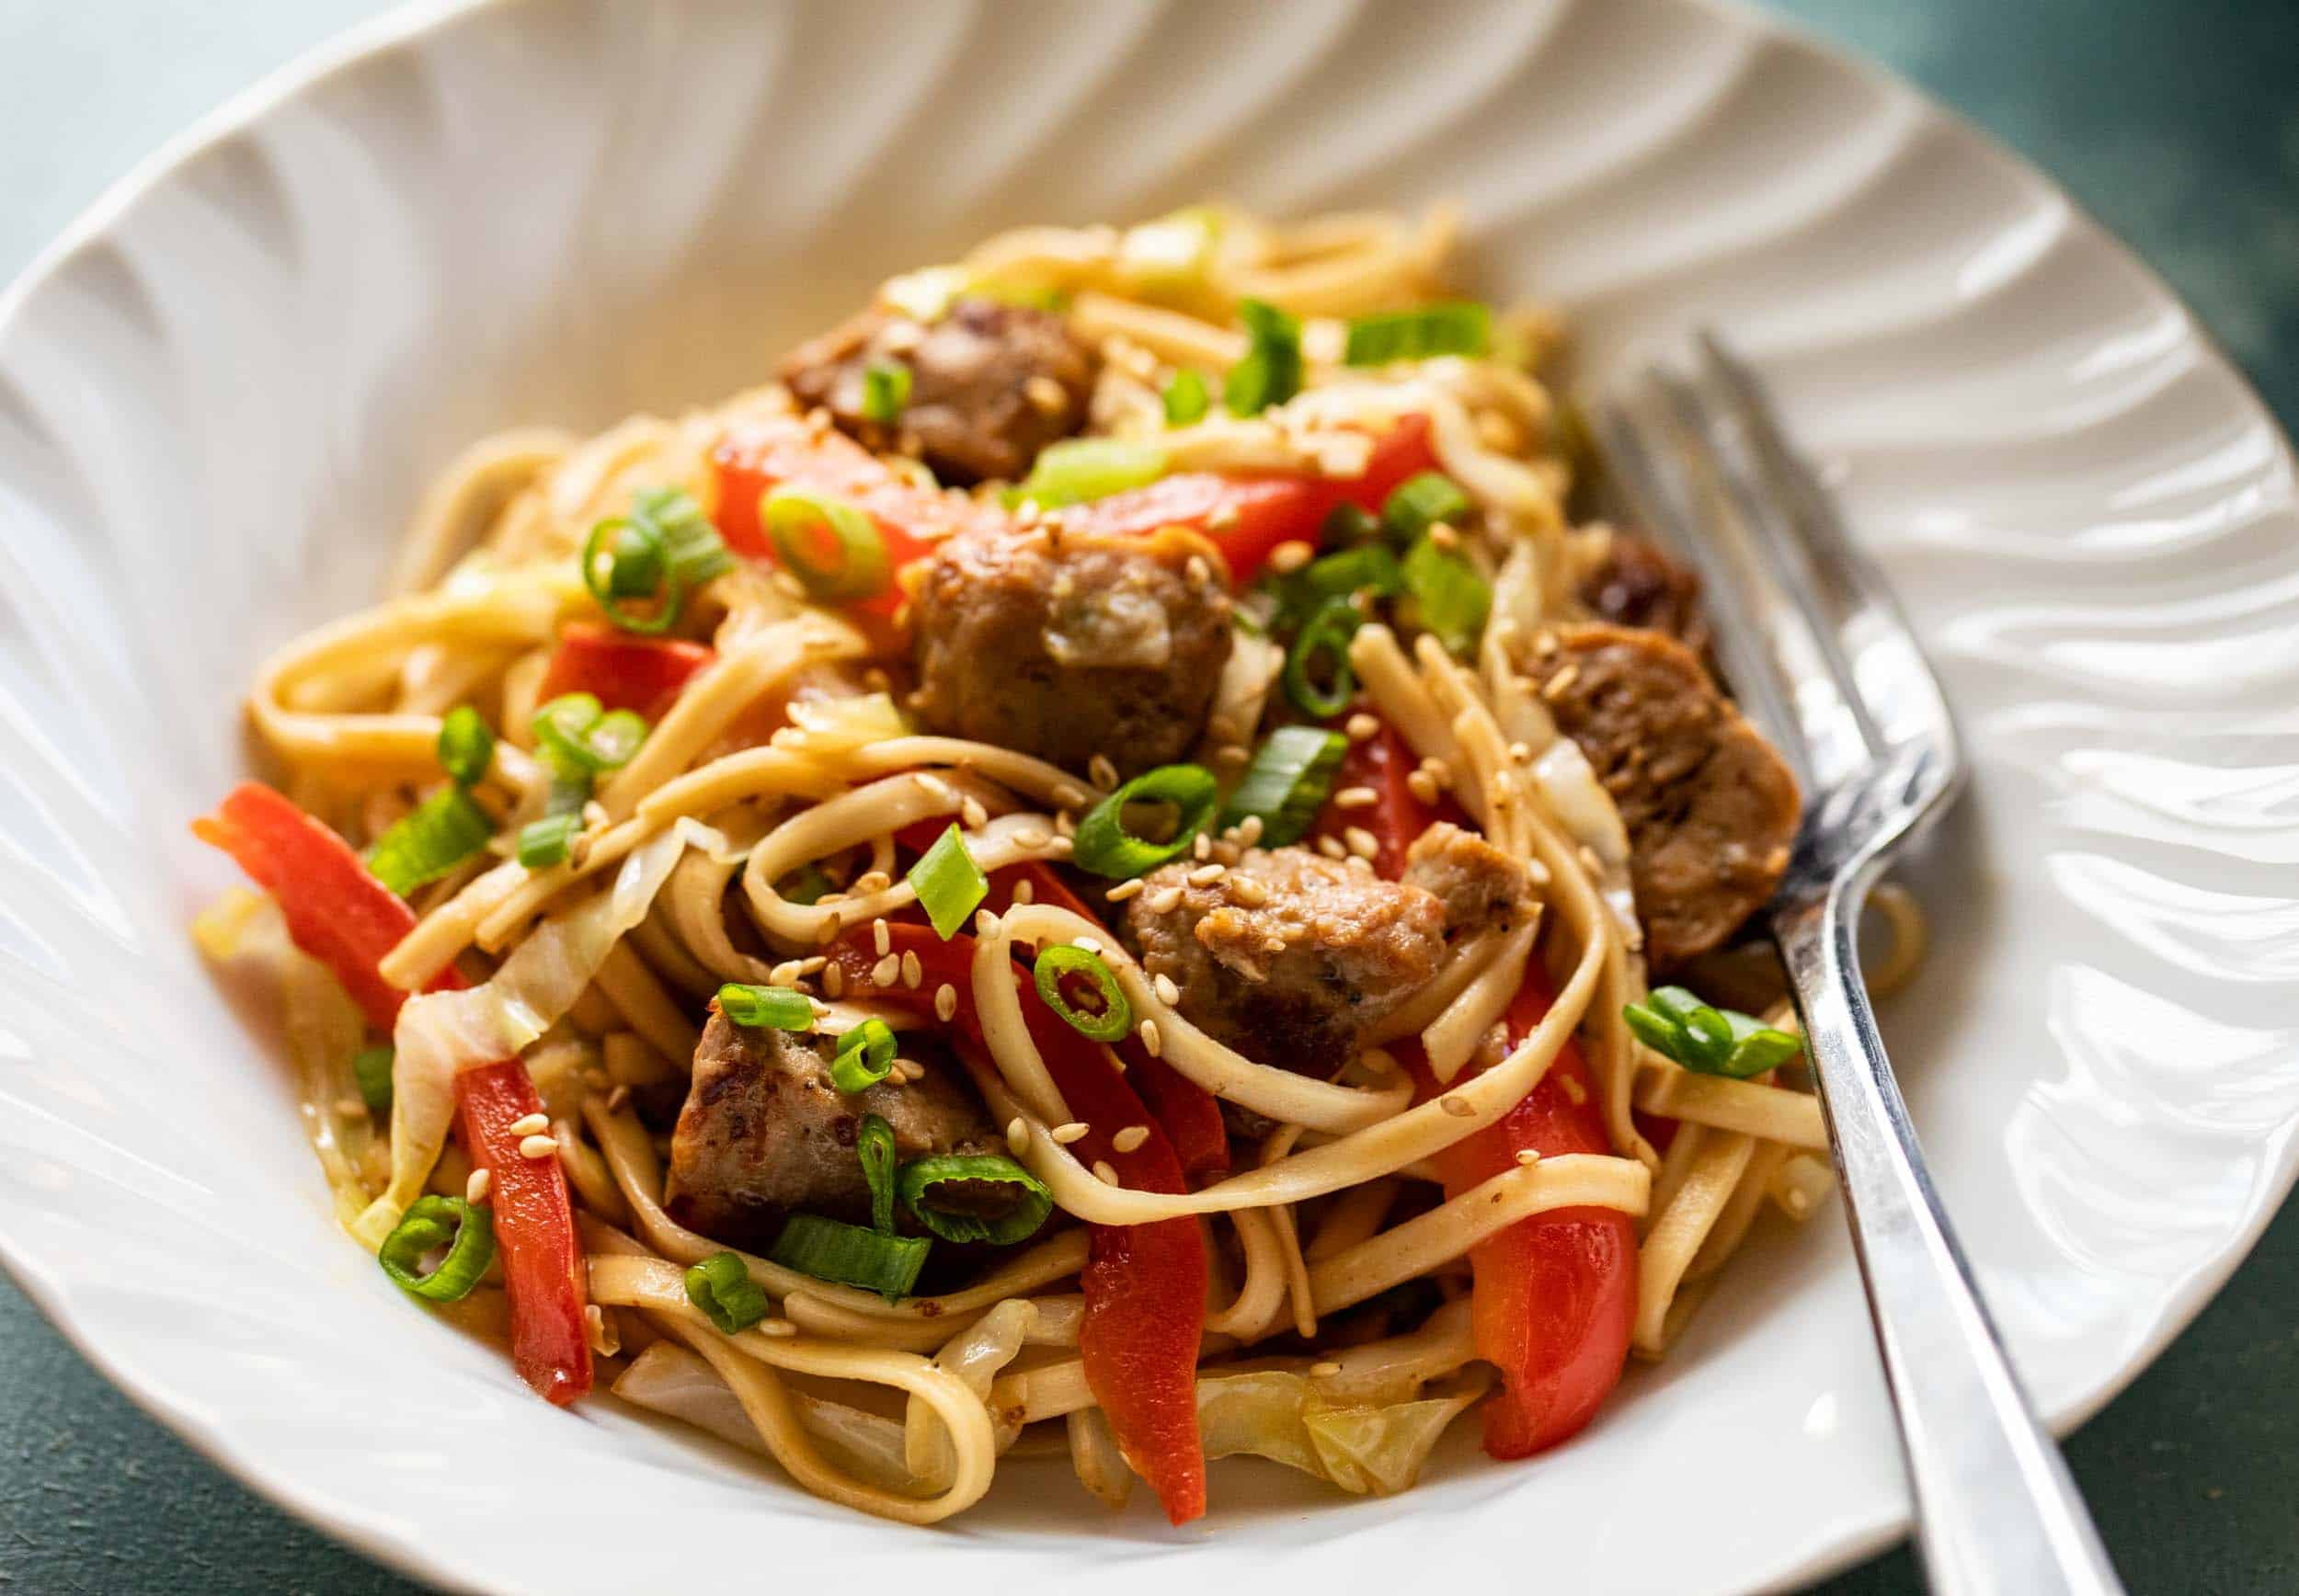 Chicken Meatball Noodle Stir Fry